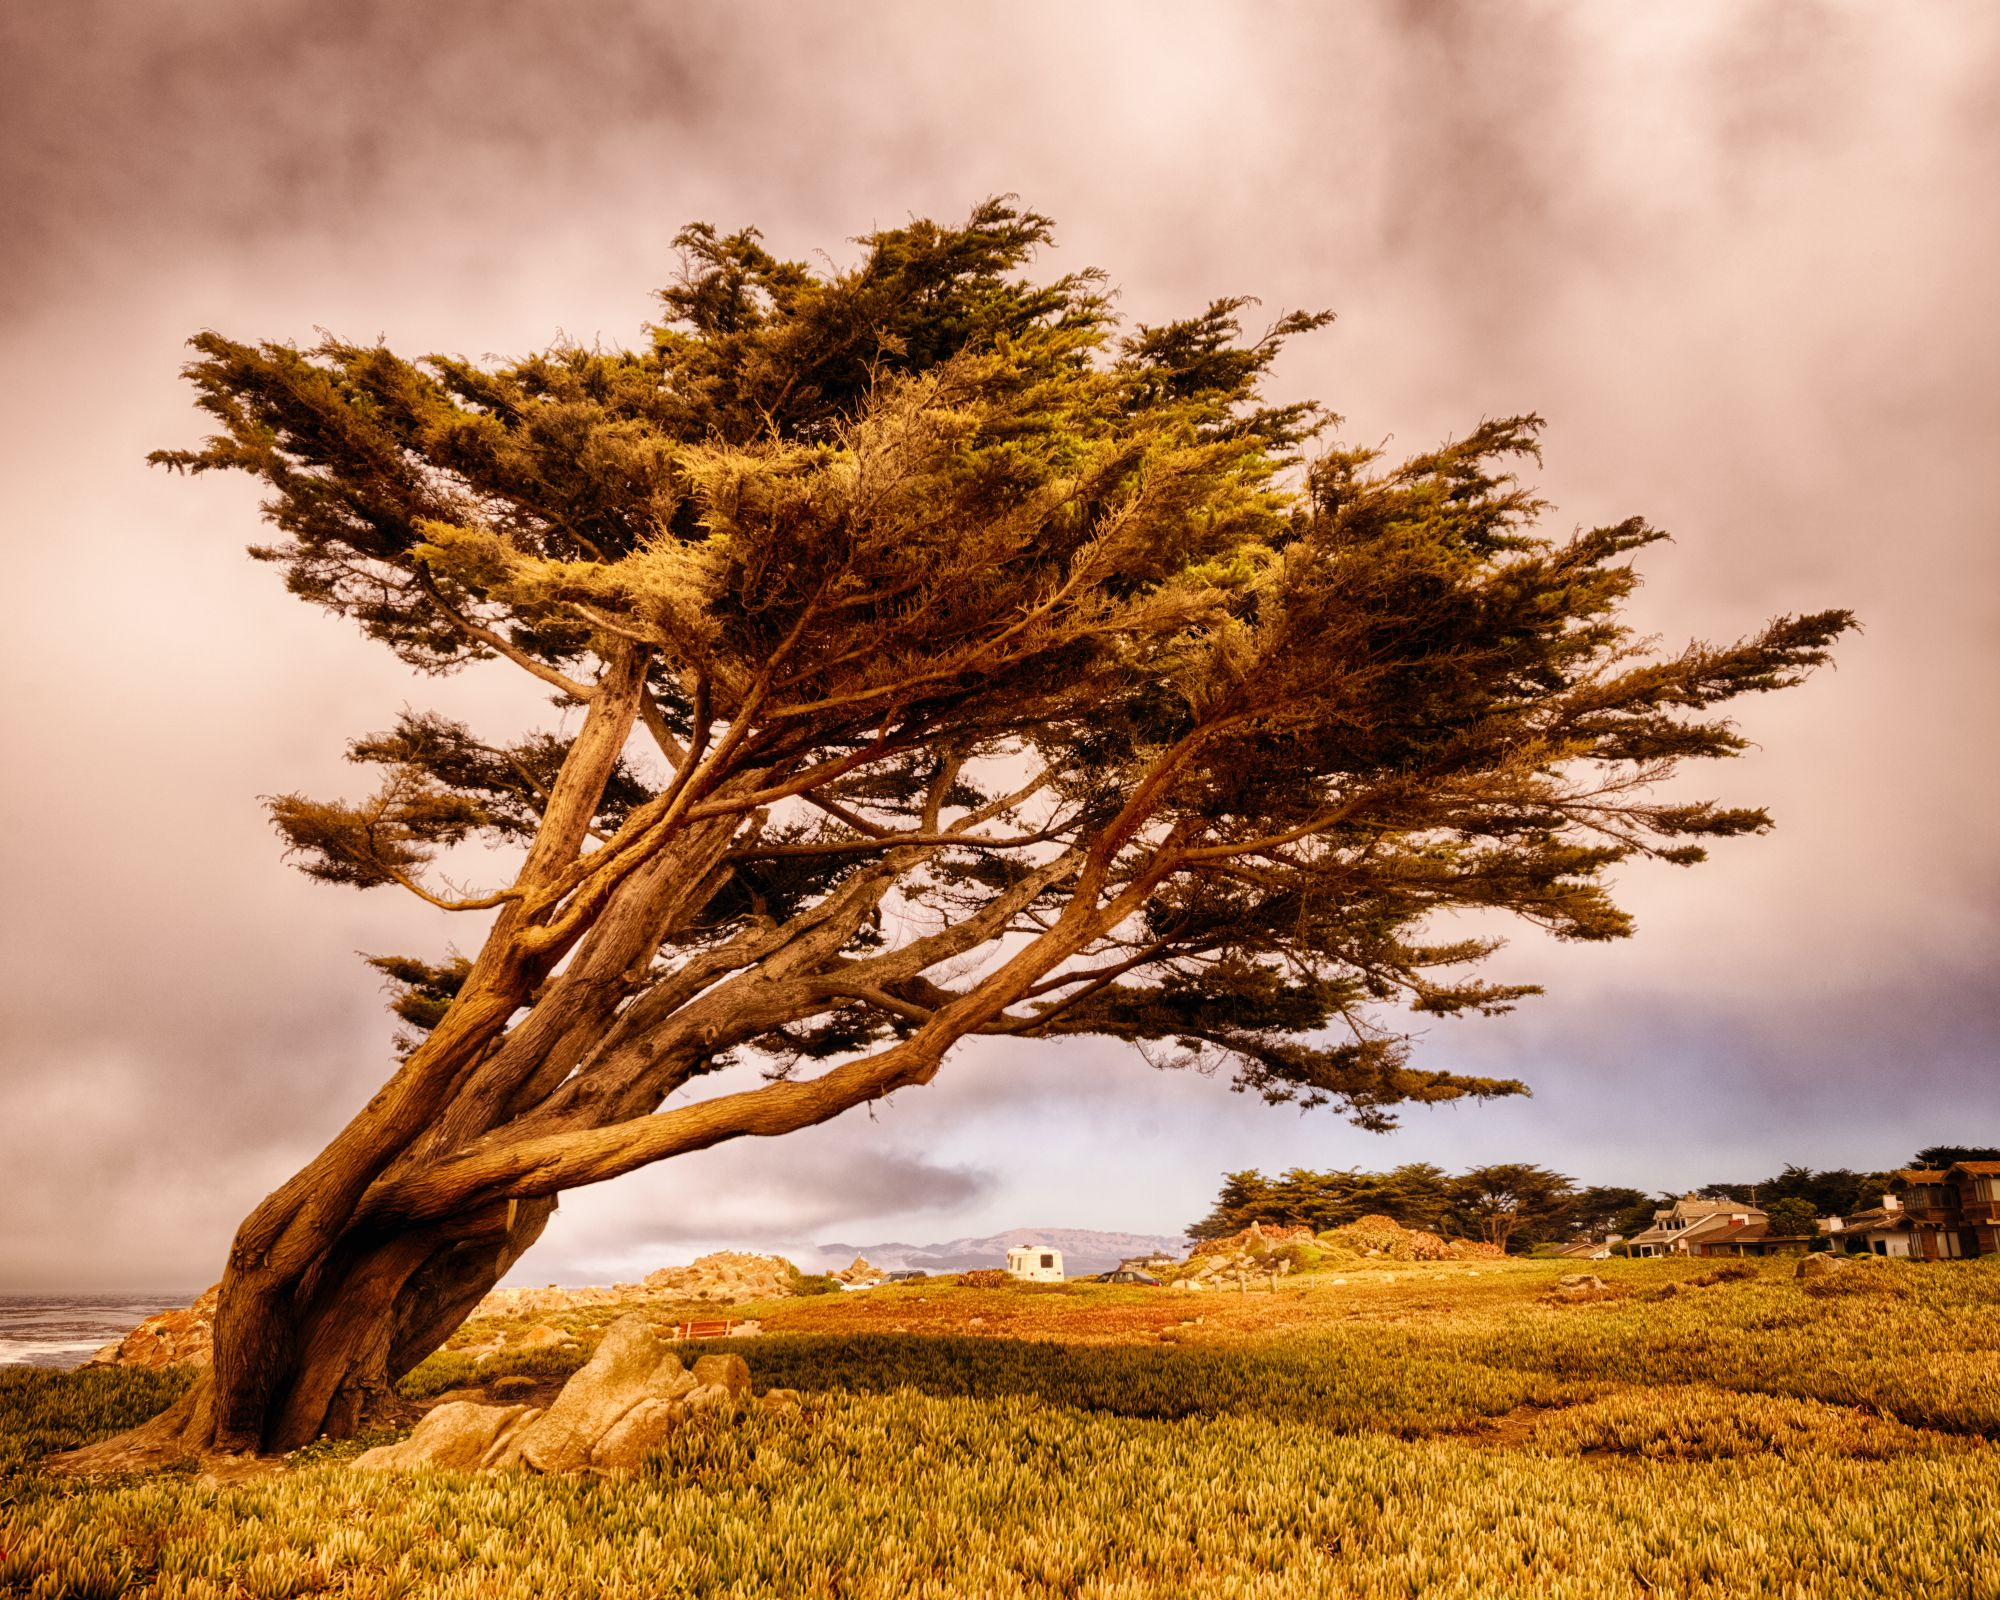 Tree of Pacific Grove